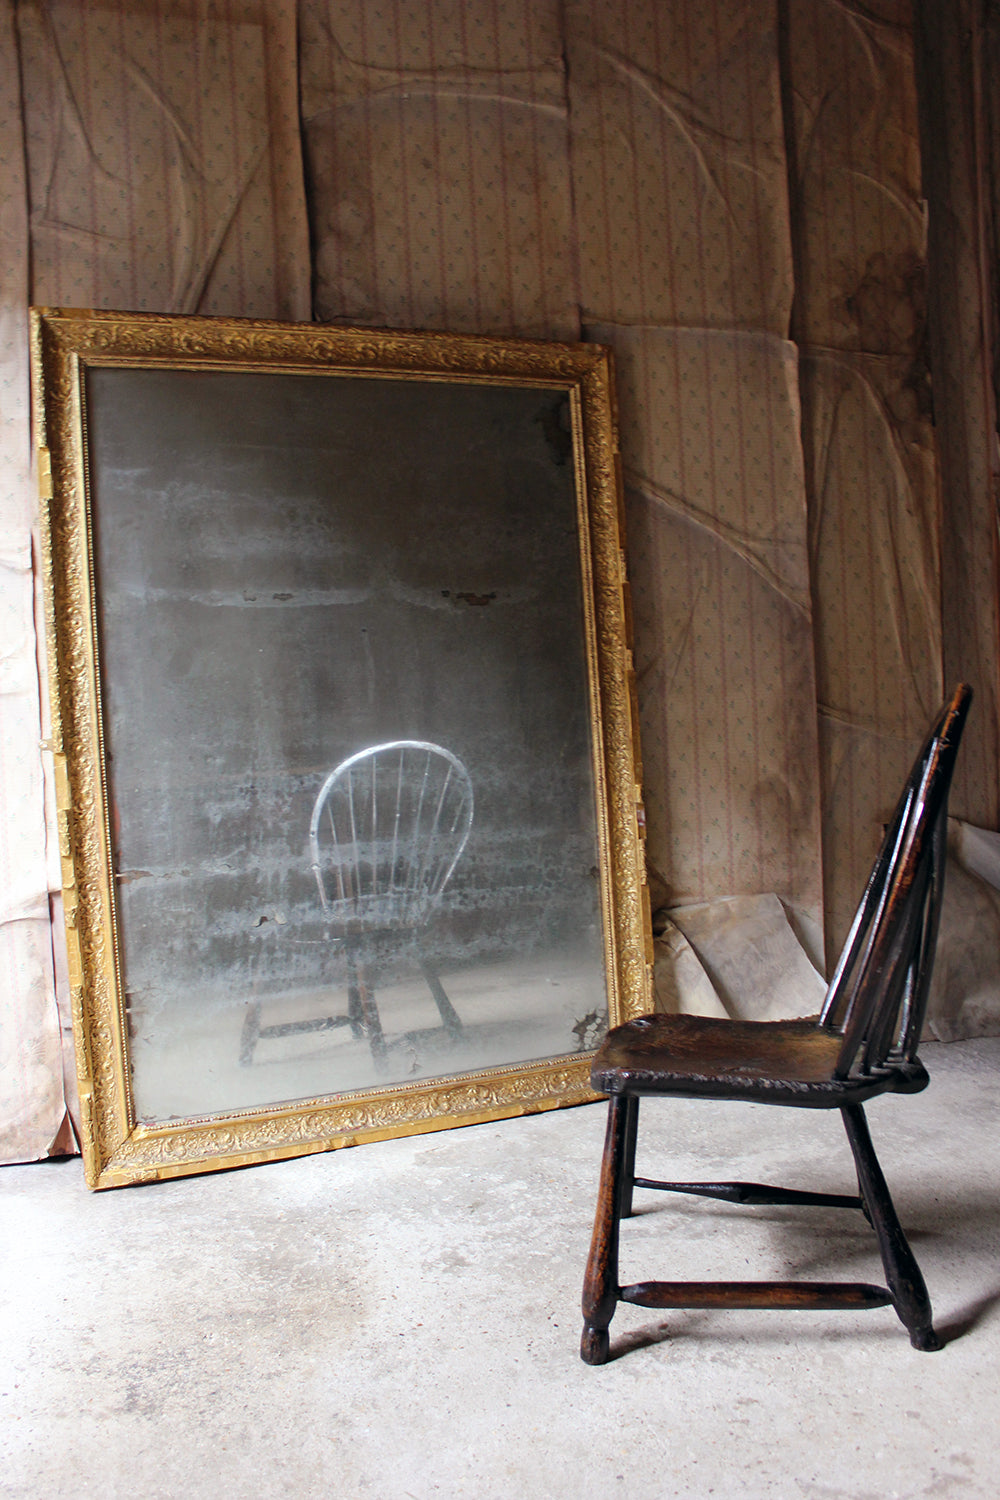 A Stunning Large 19thC French Giltwood & Gesso Wall Mirror c.1880